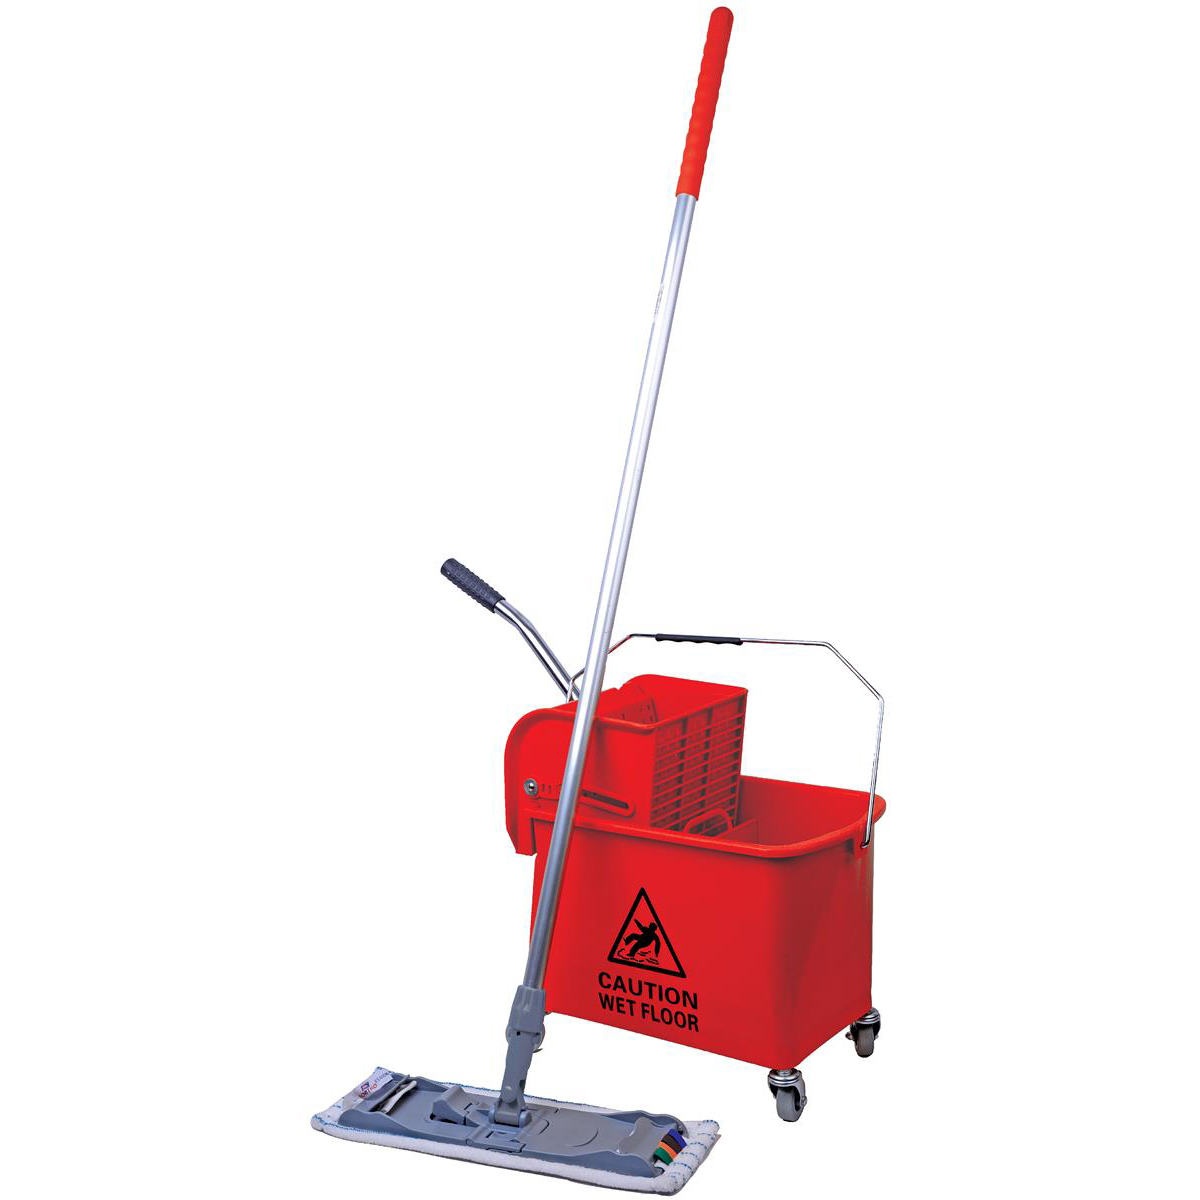 Robert Scott & Sons Microspeedy Mopping System Starter Kit Red Ref 101284 - Red KIT